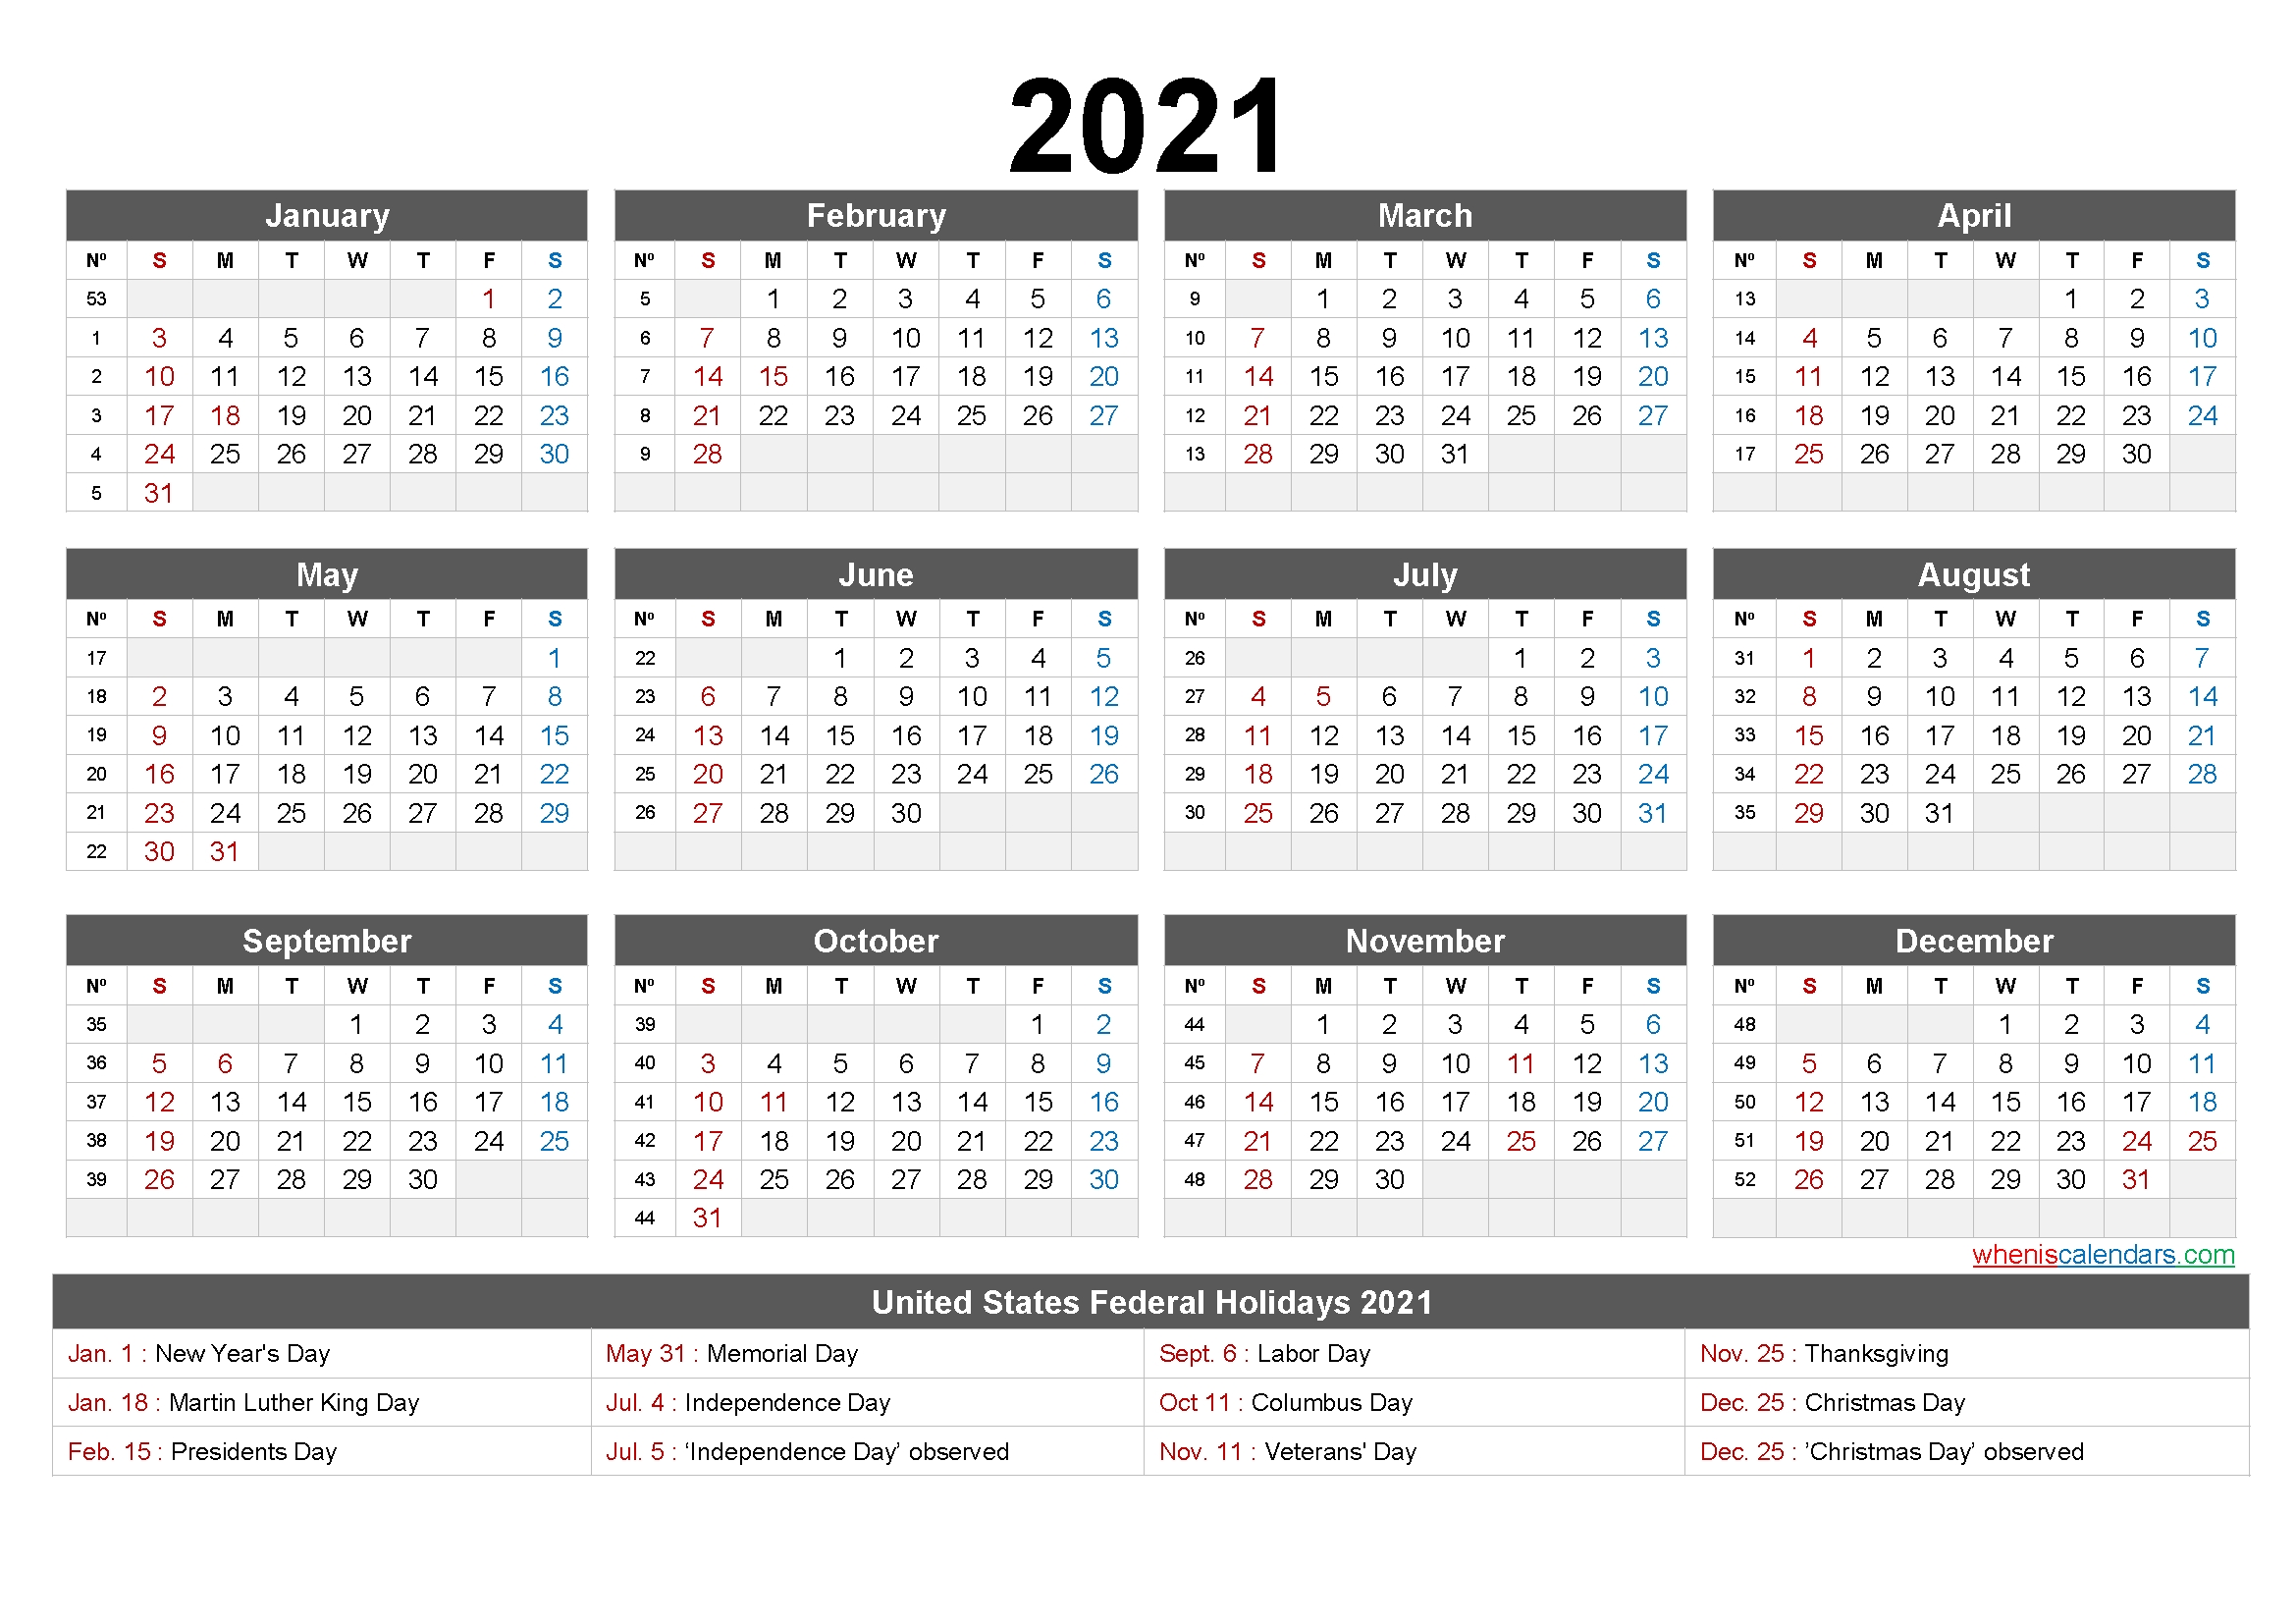 2021 One Page Calendar Printable - 6 Templates   Free Printable 2020 Calendar With Holidays with Calendar Templates 3 Months Per Page 2021 Graphics